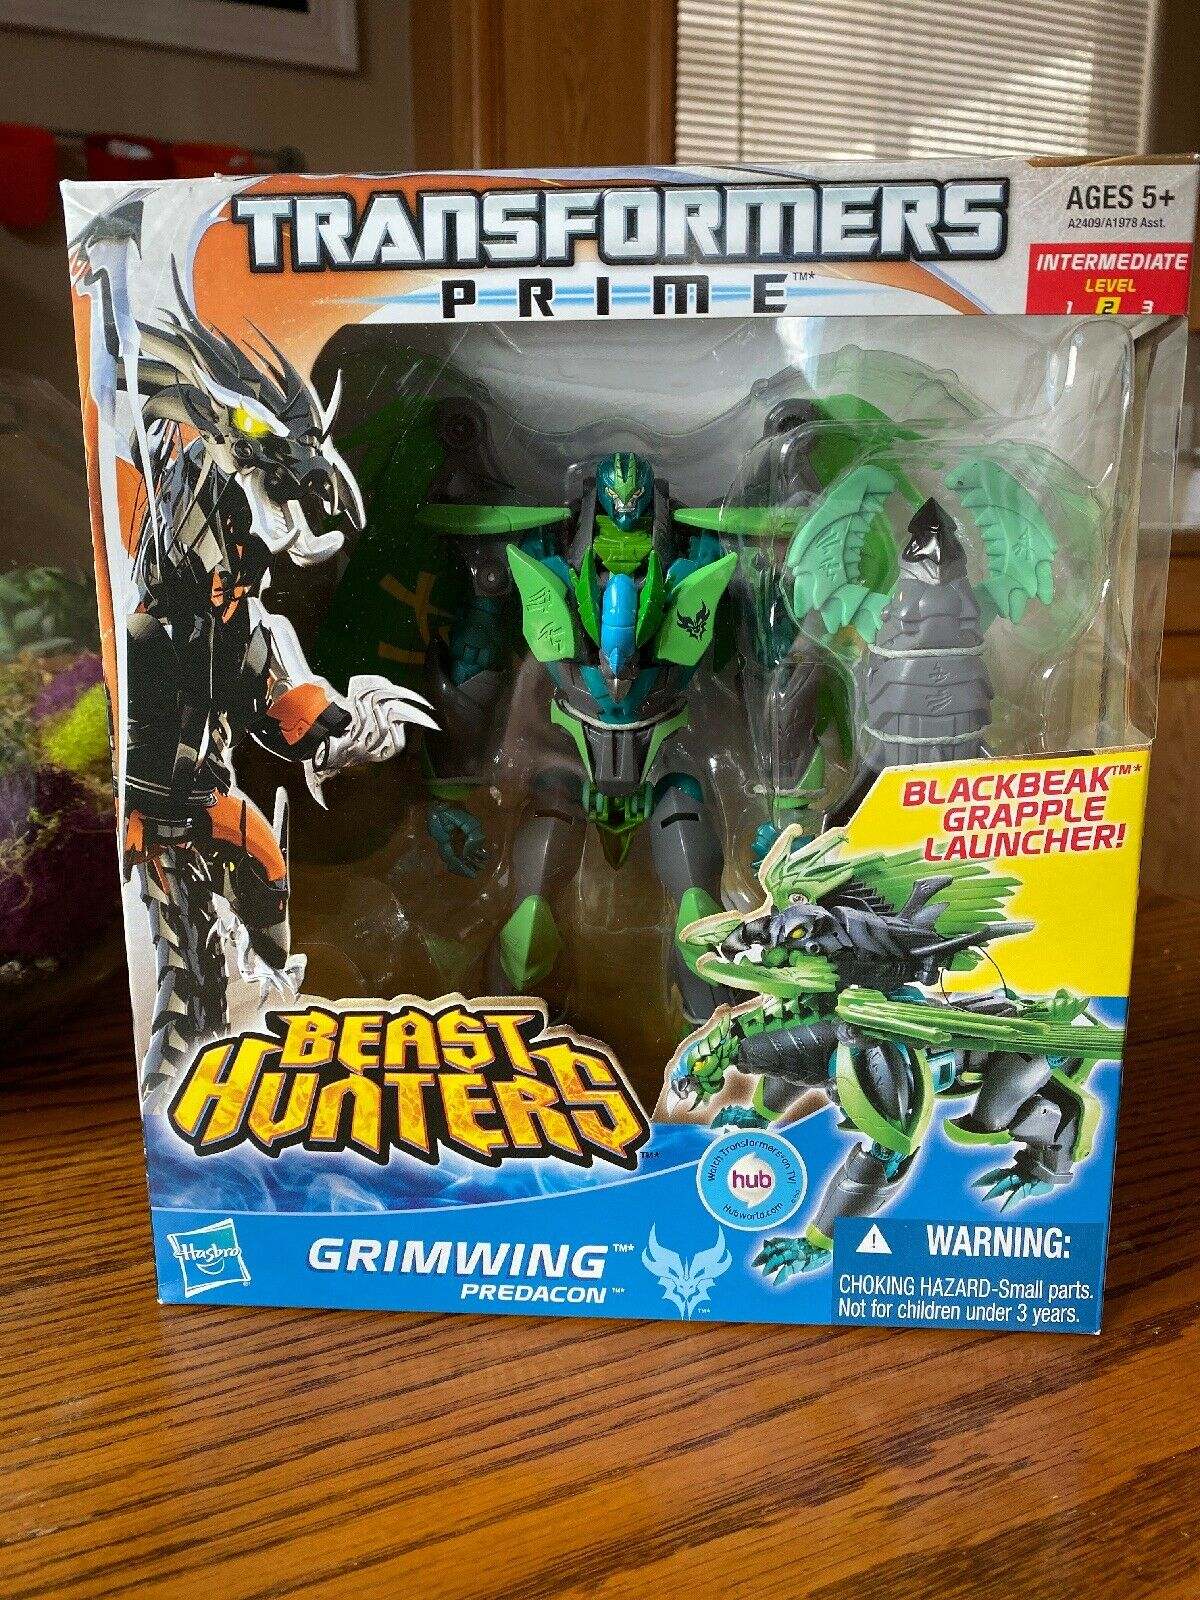 GRIMWING Transformers Prime Beast Hunters Voyager Class Figure #4 Series 2 2013